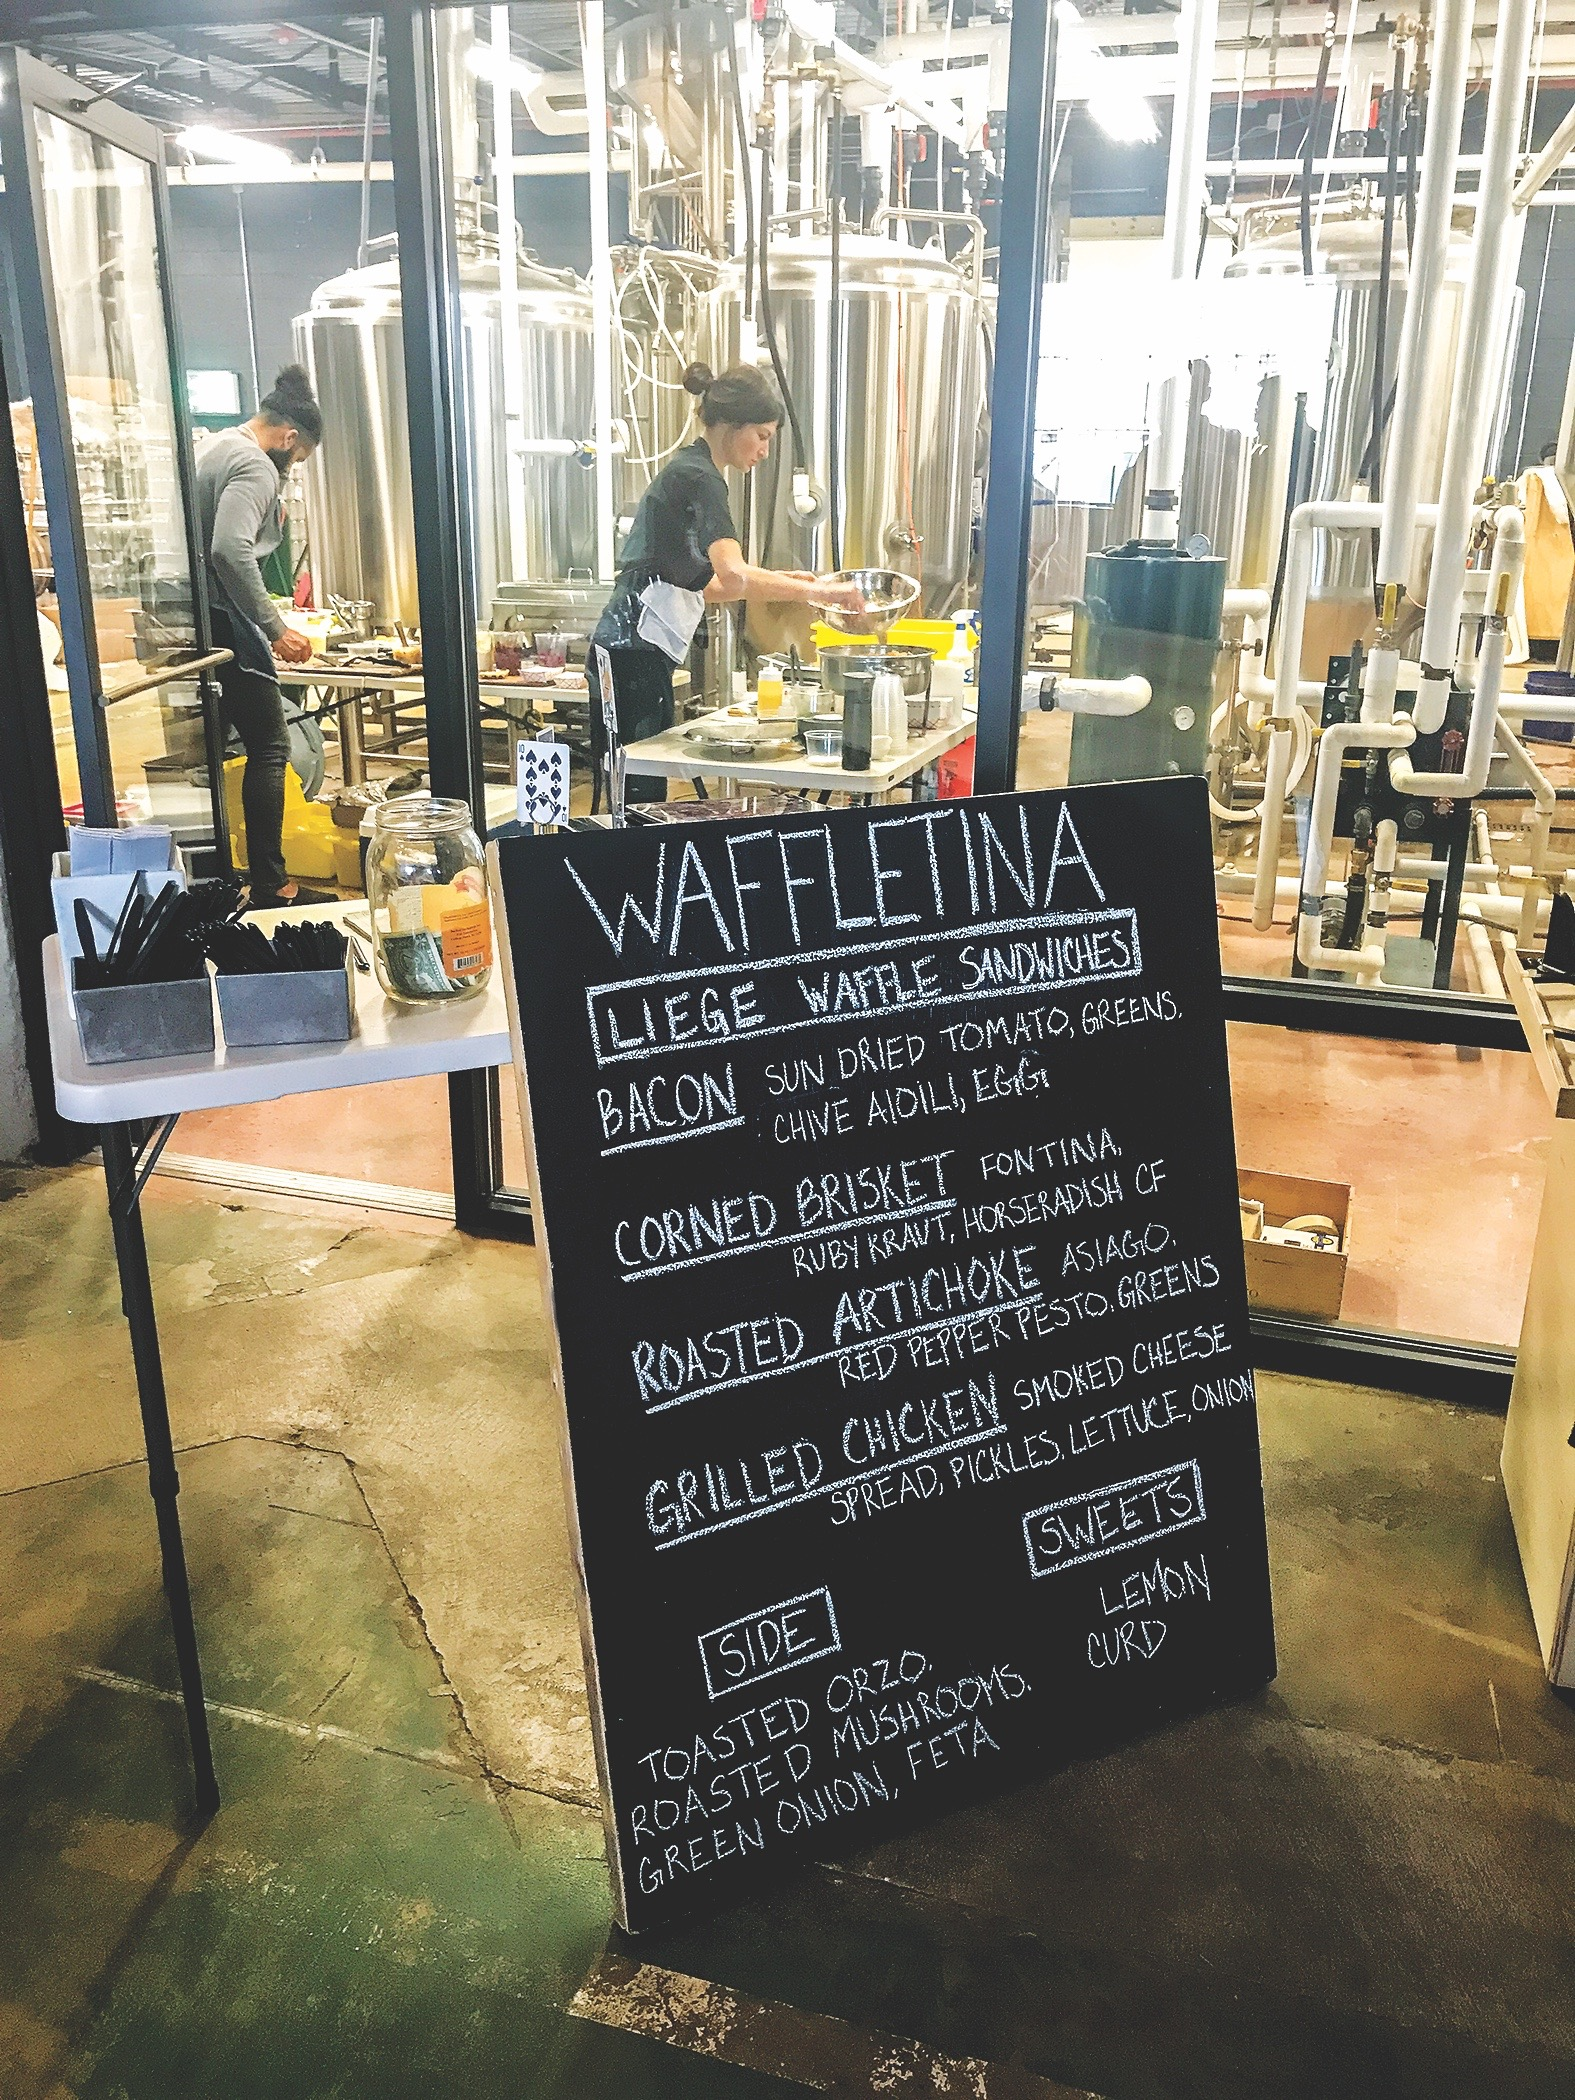 Waffletina Benchtop Brewing Norfolk